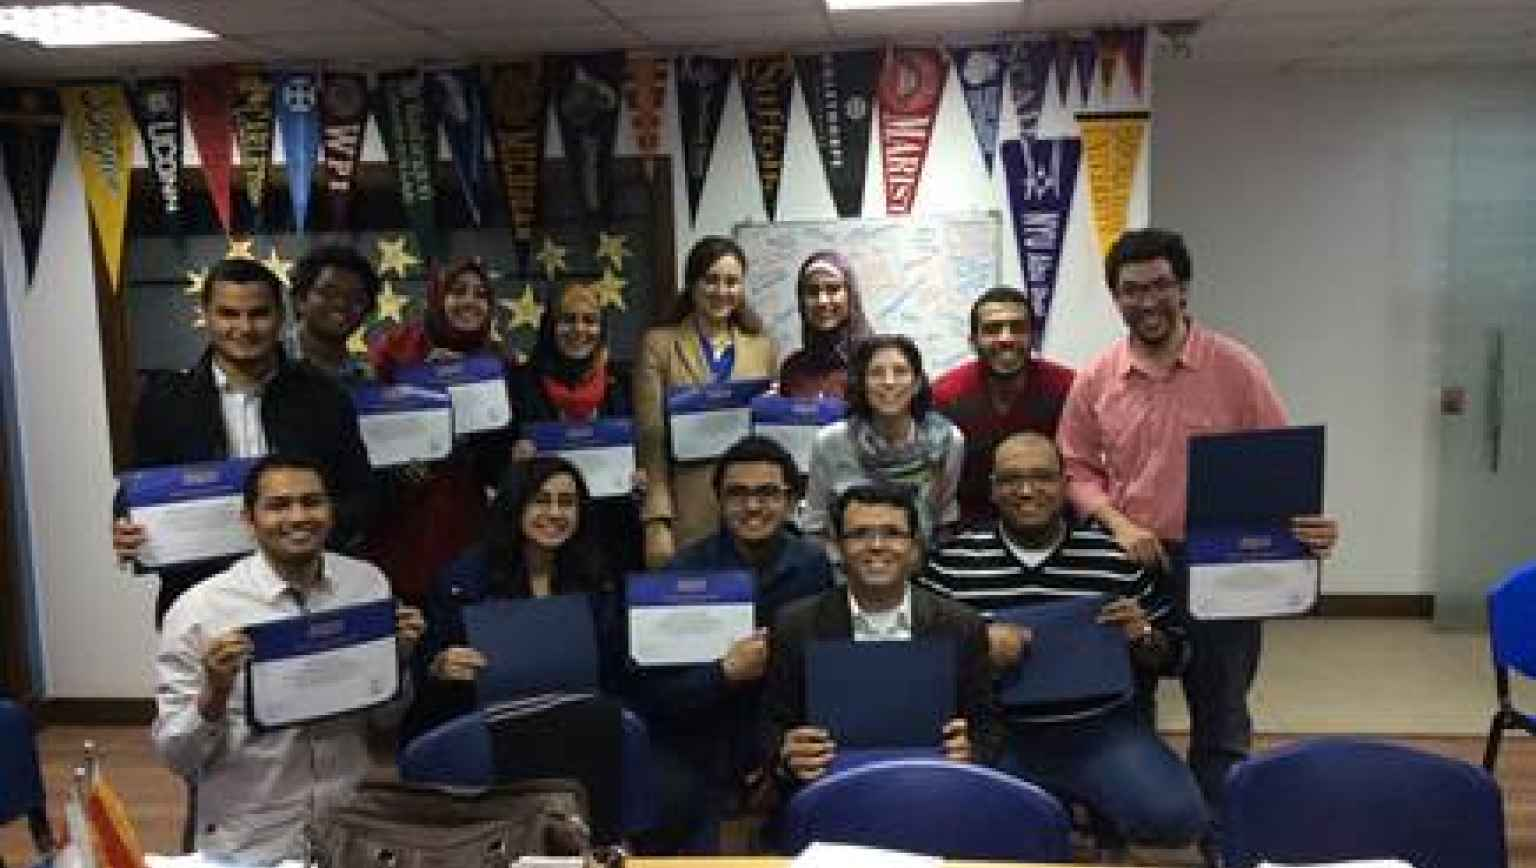 EducationUSA Cairo, Egypt Study Group with Certificates